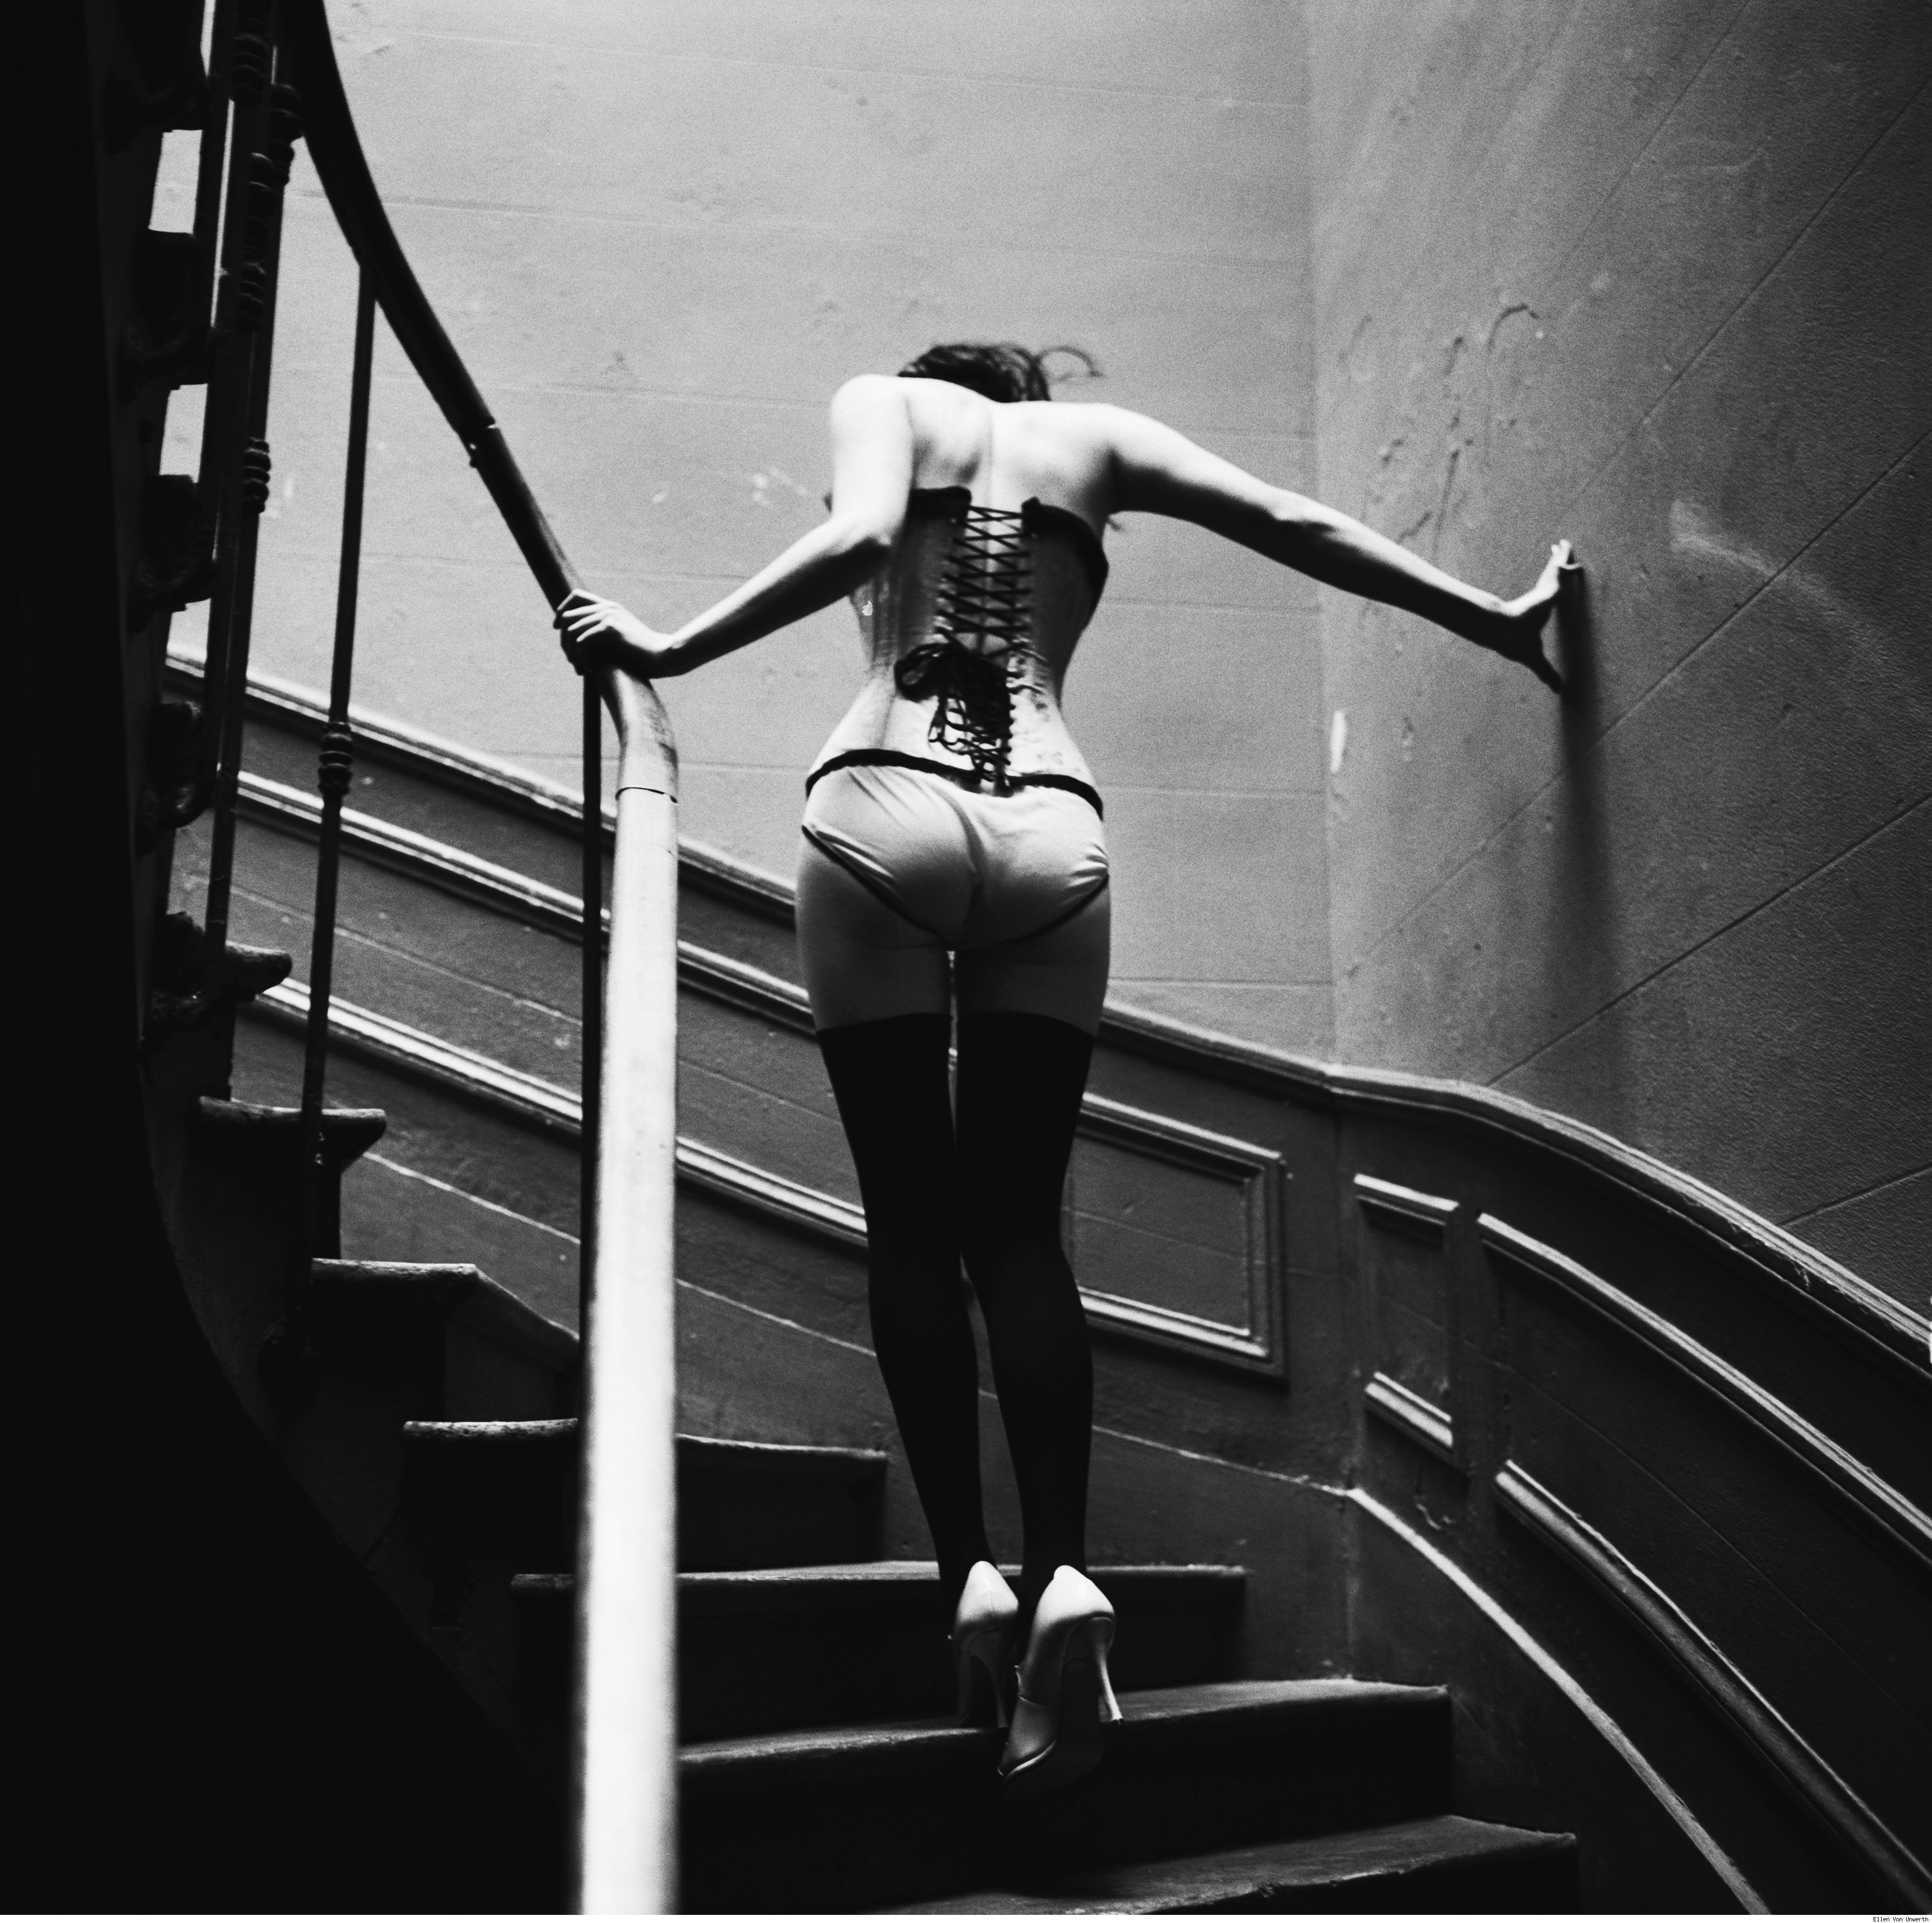 UP STAIRS Paris 1996